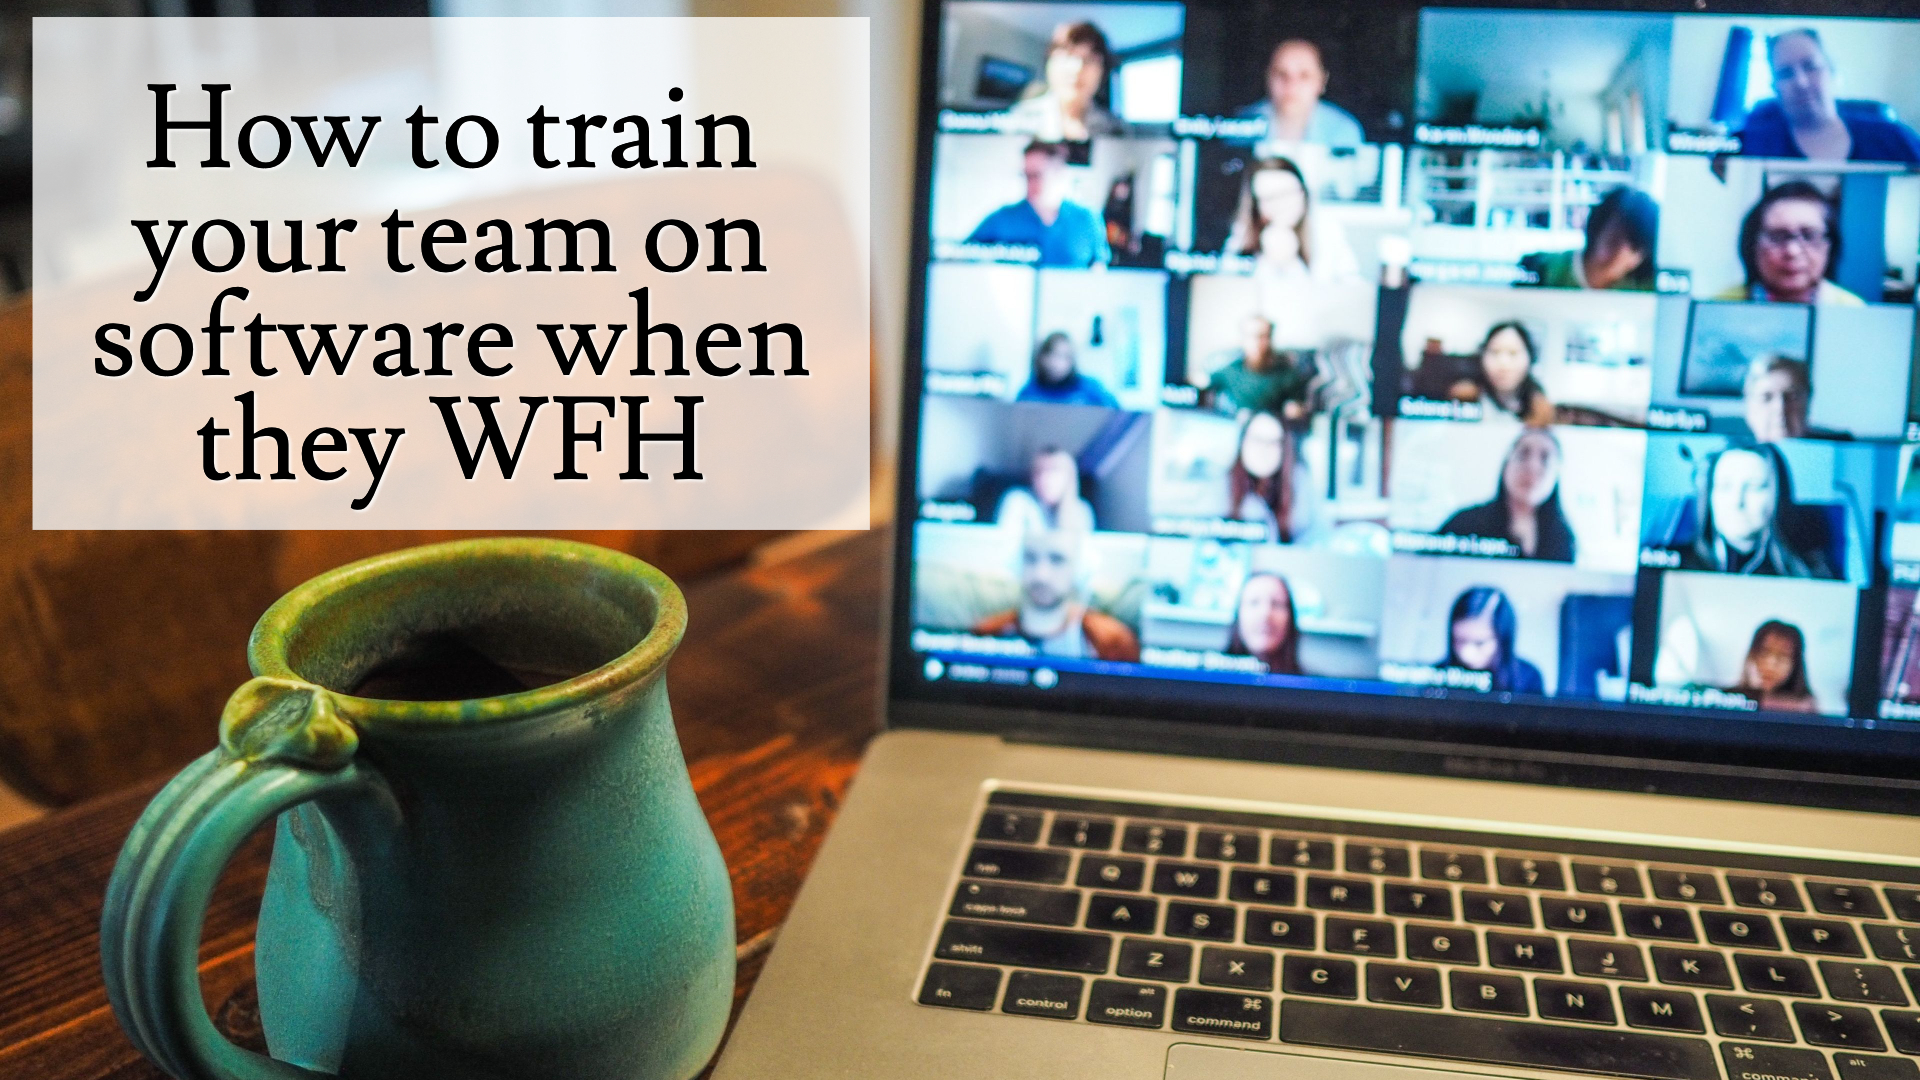 Train Staff working from home